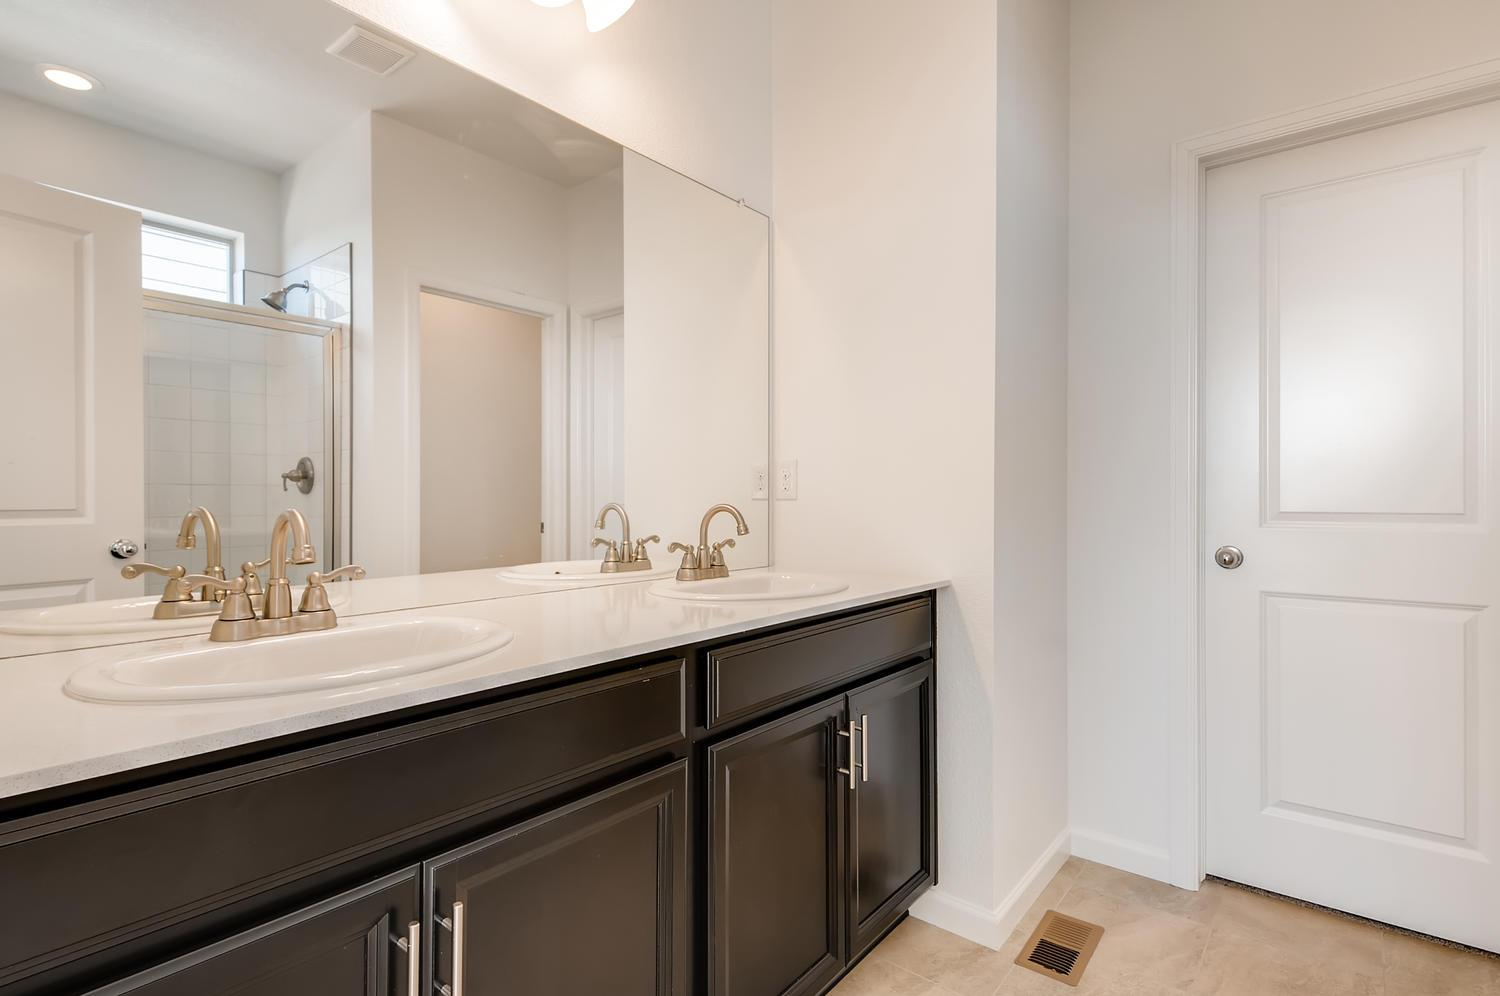 Bathroom featured in the Alpine By Dream Finders Homes in Denver, CO